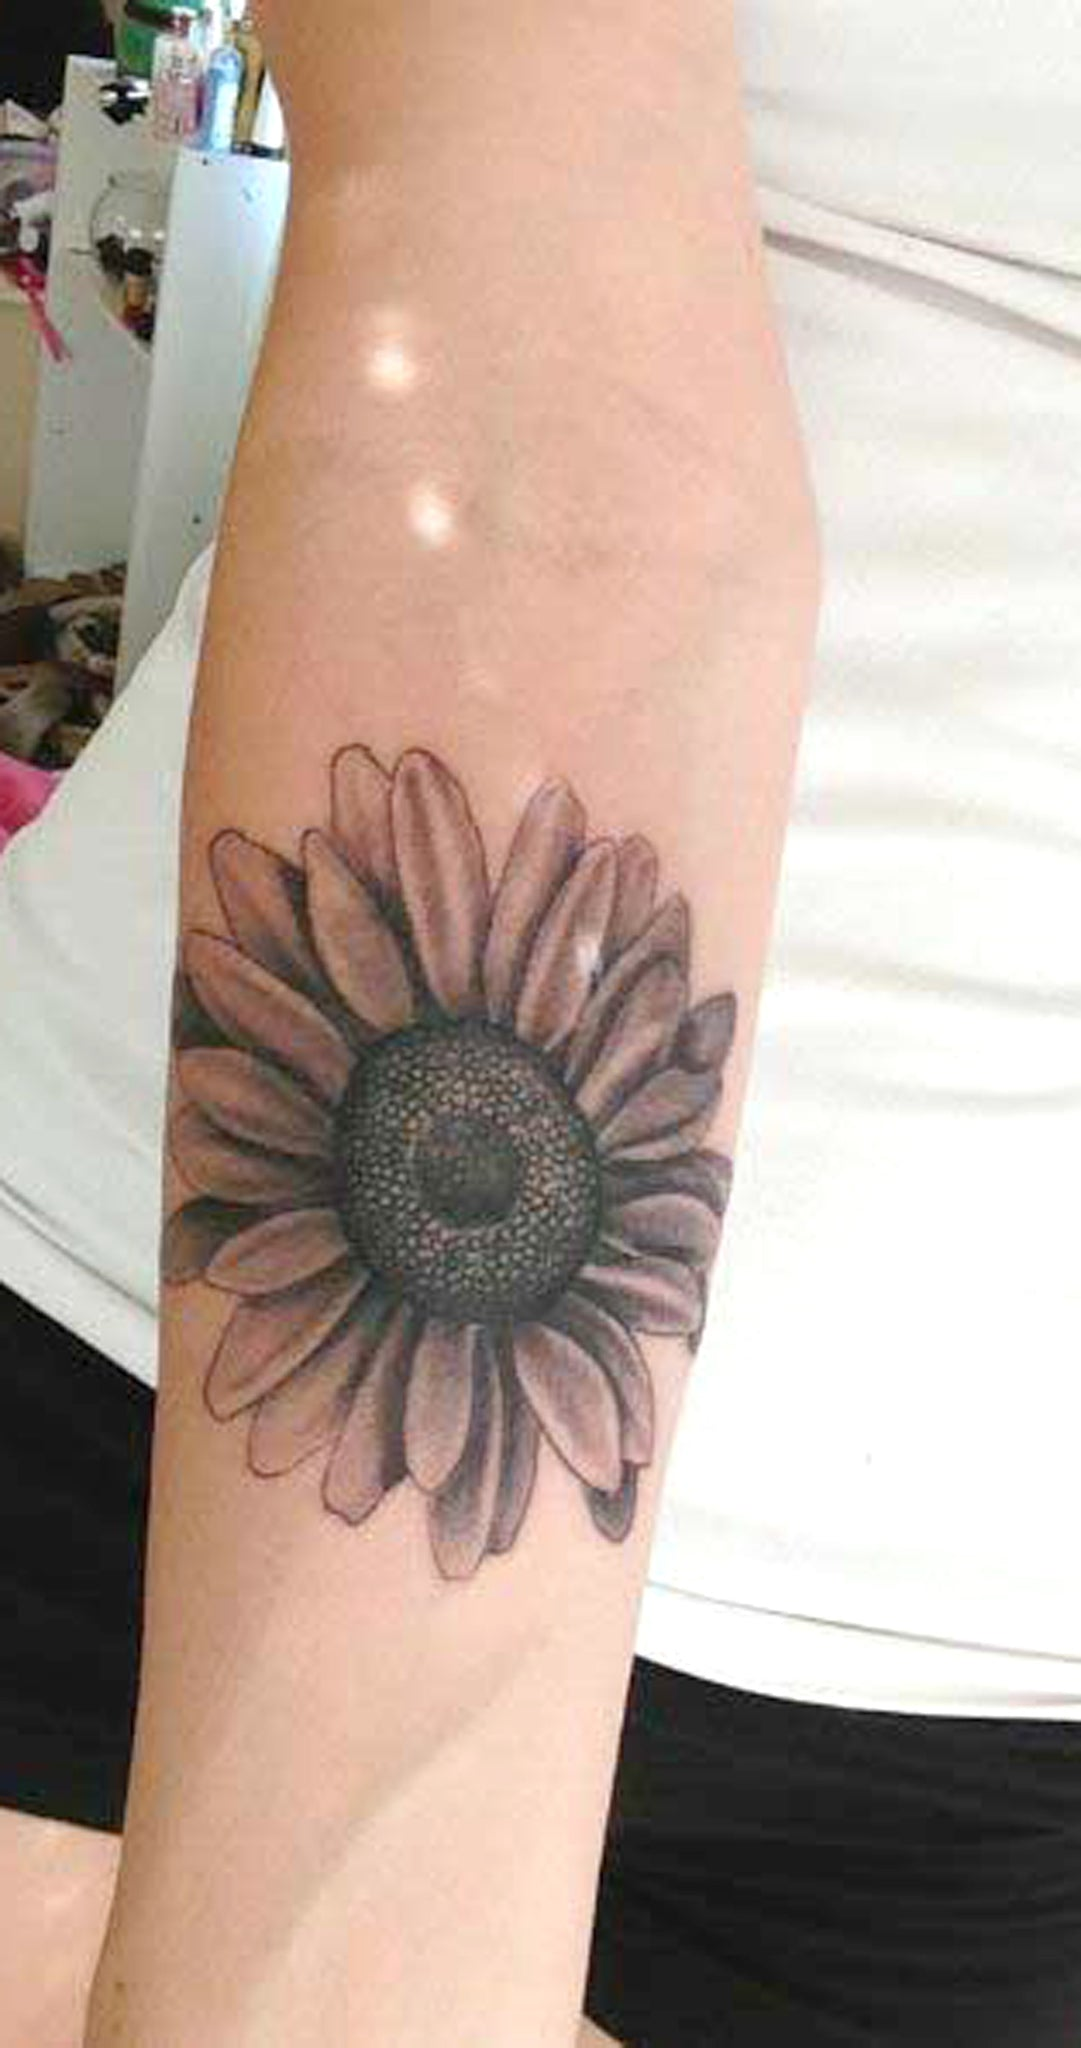 Black Realistic Sunflower Forearm Tattoo Ideas for Women - Floral Flower Vintage Arm Sleeve Tat -  idées de tatouage de l'avant-bras de tournesol - www.MyBodiArt.com